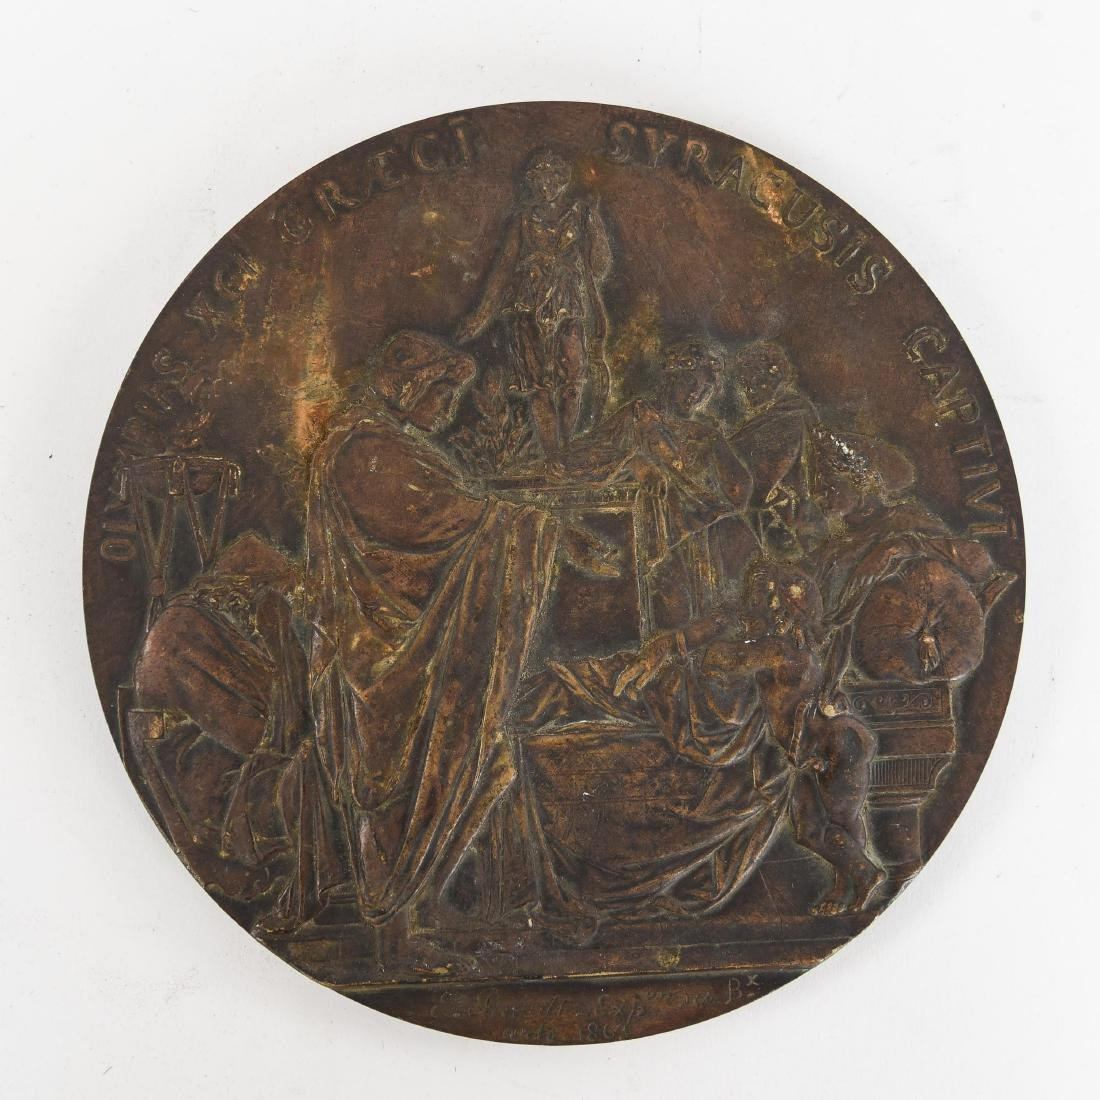 EMILE LOUIS PICAULT BRONZE PLAQUE